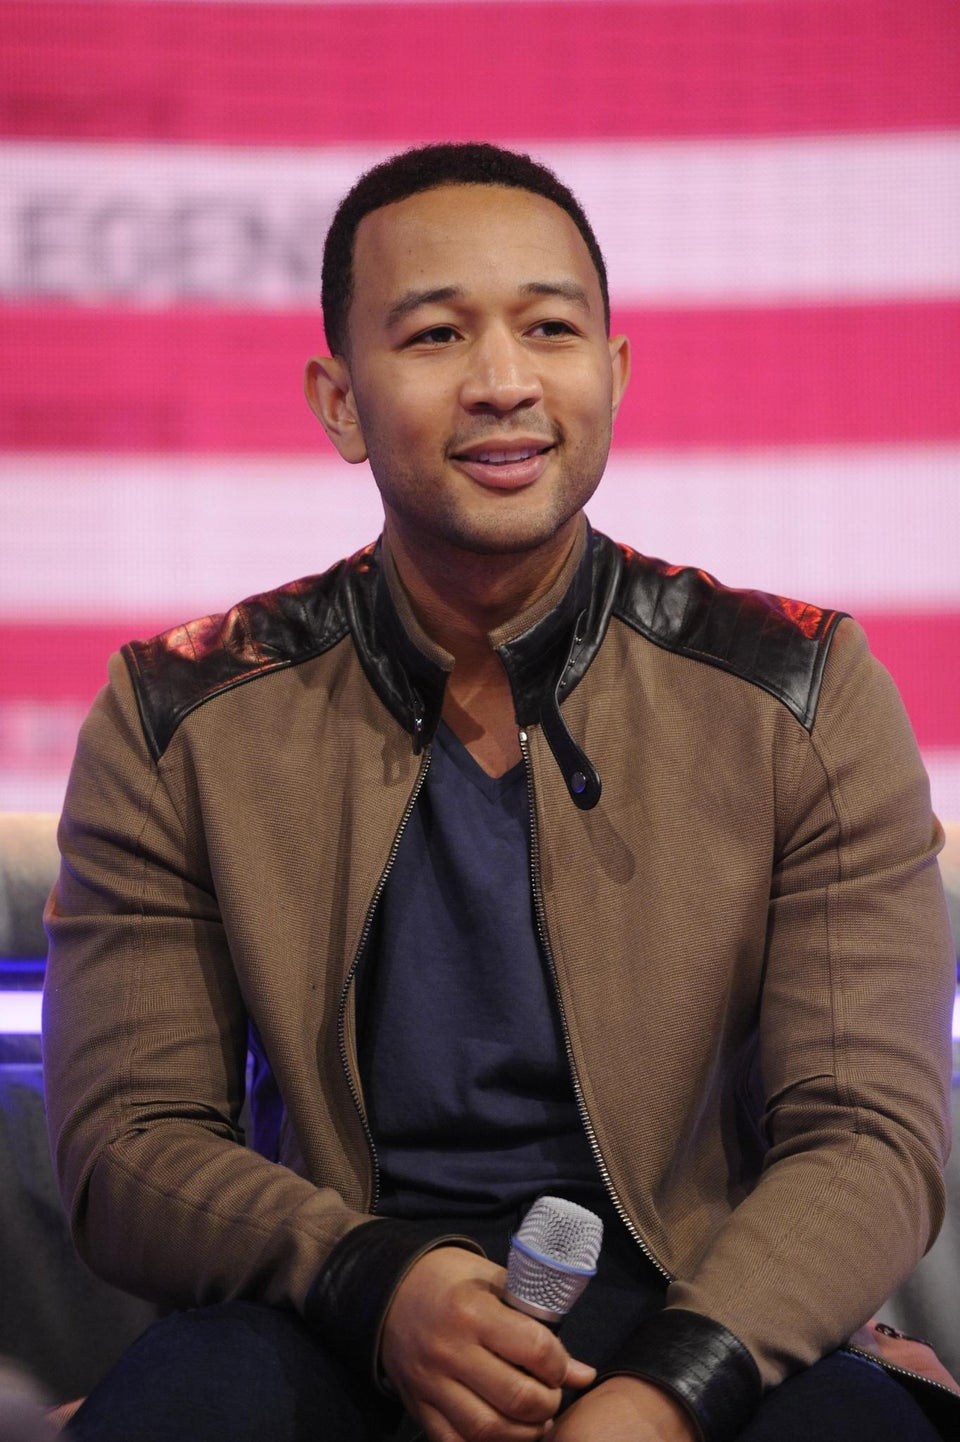 EXCLUSIVE: 7 Things You Didn't Know About John Legend